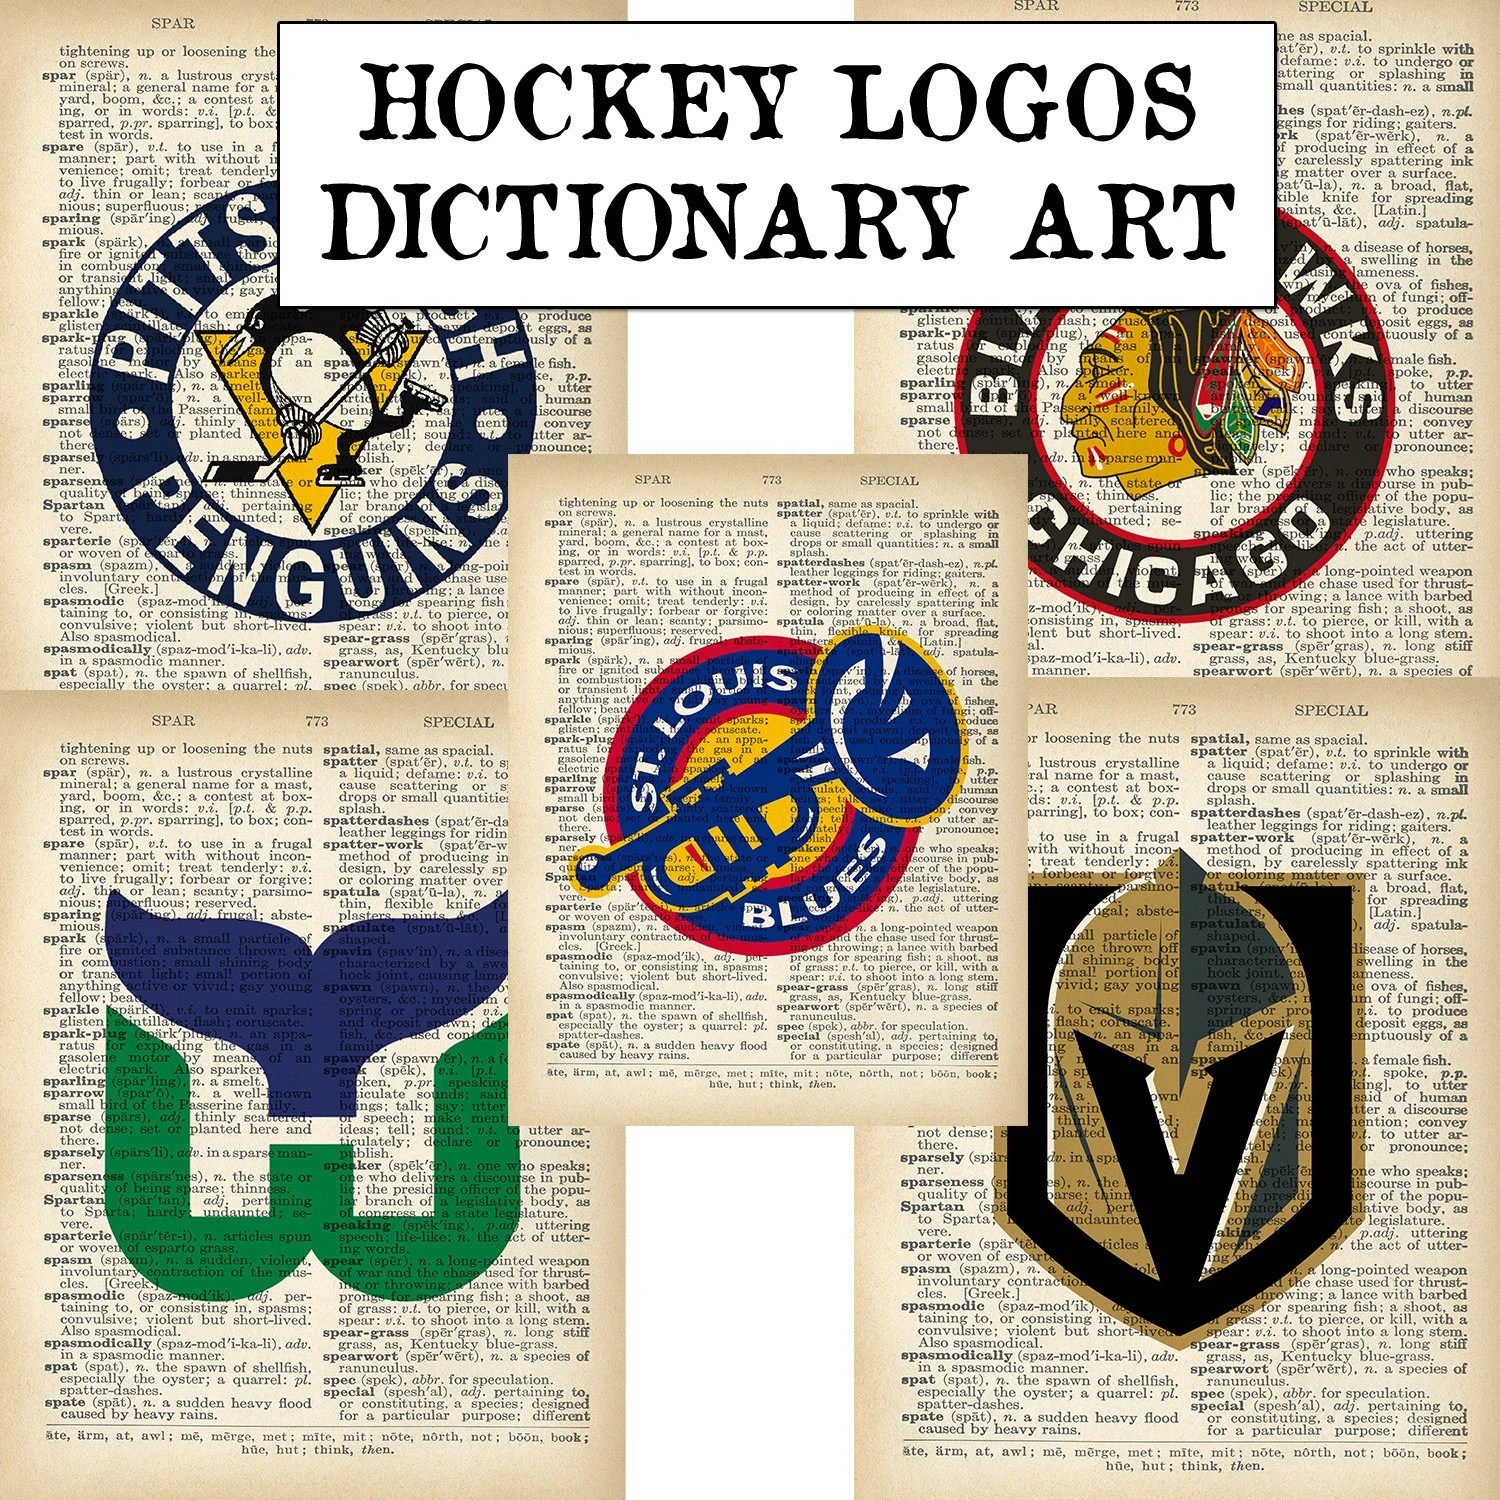 Hockey Logos Vintage Nhl Current Hockey Logos Old Dictionary Pages Pittsburgh Penguins Hartford Whalers Golden Knights St Louis Blues Chicago Blackhawks